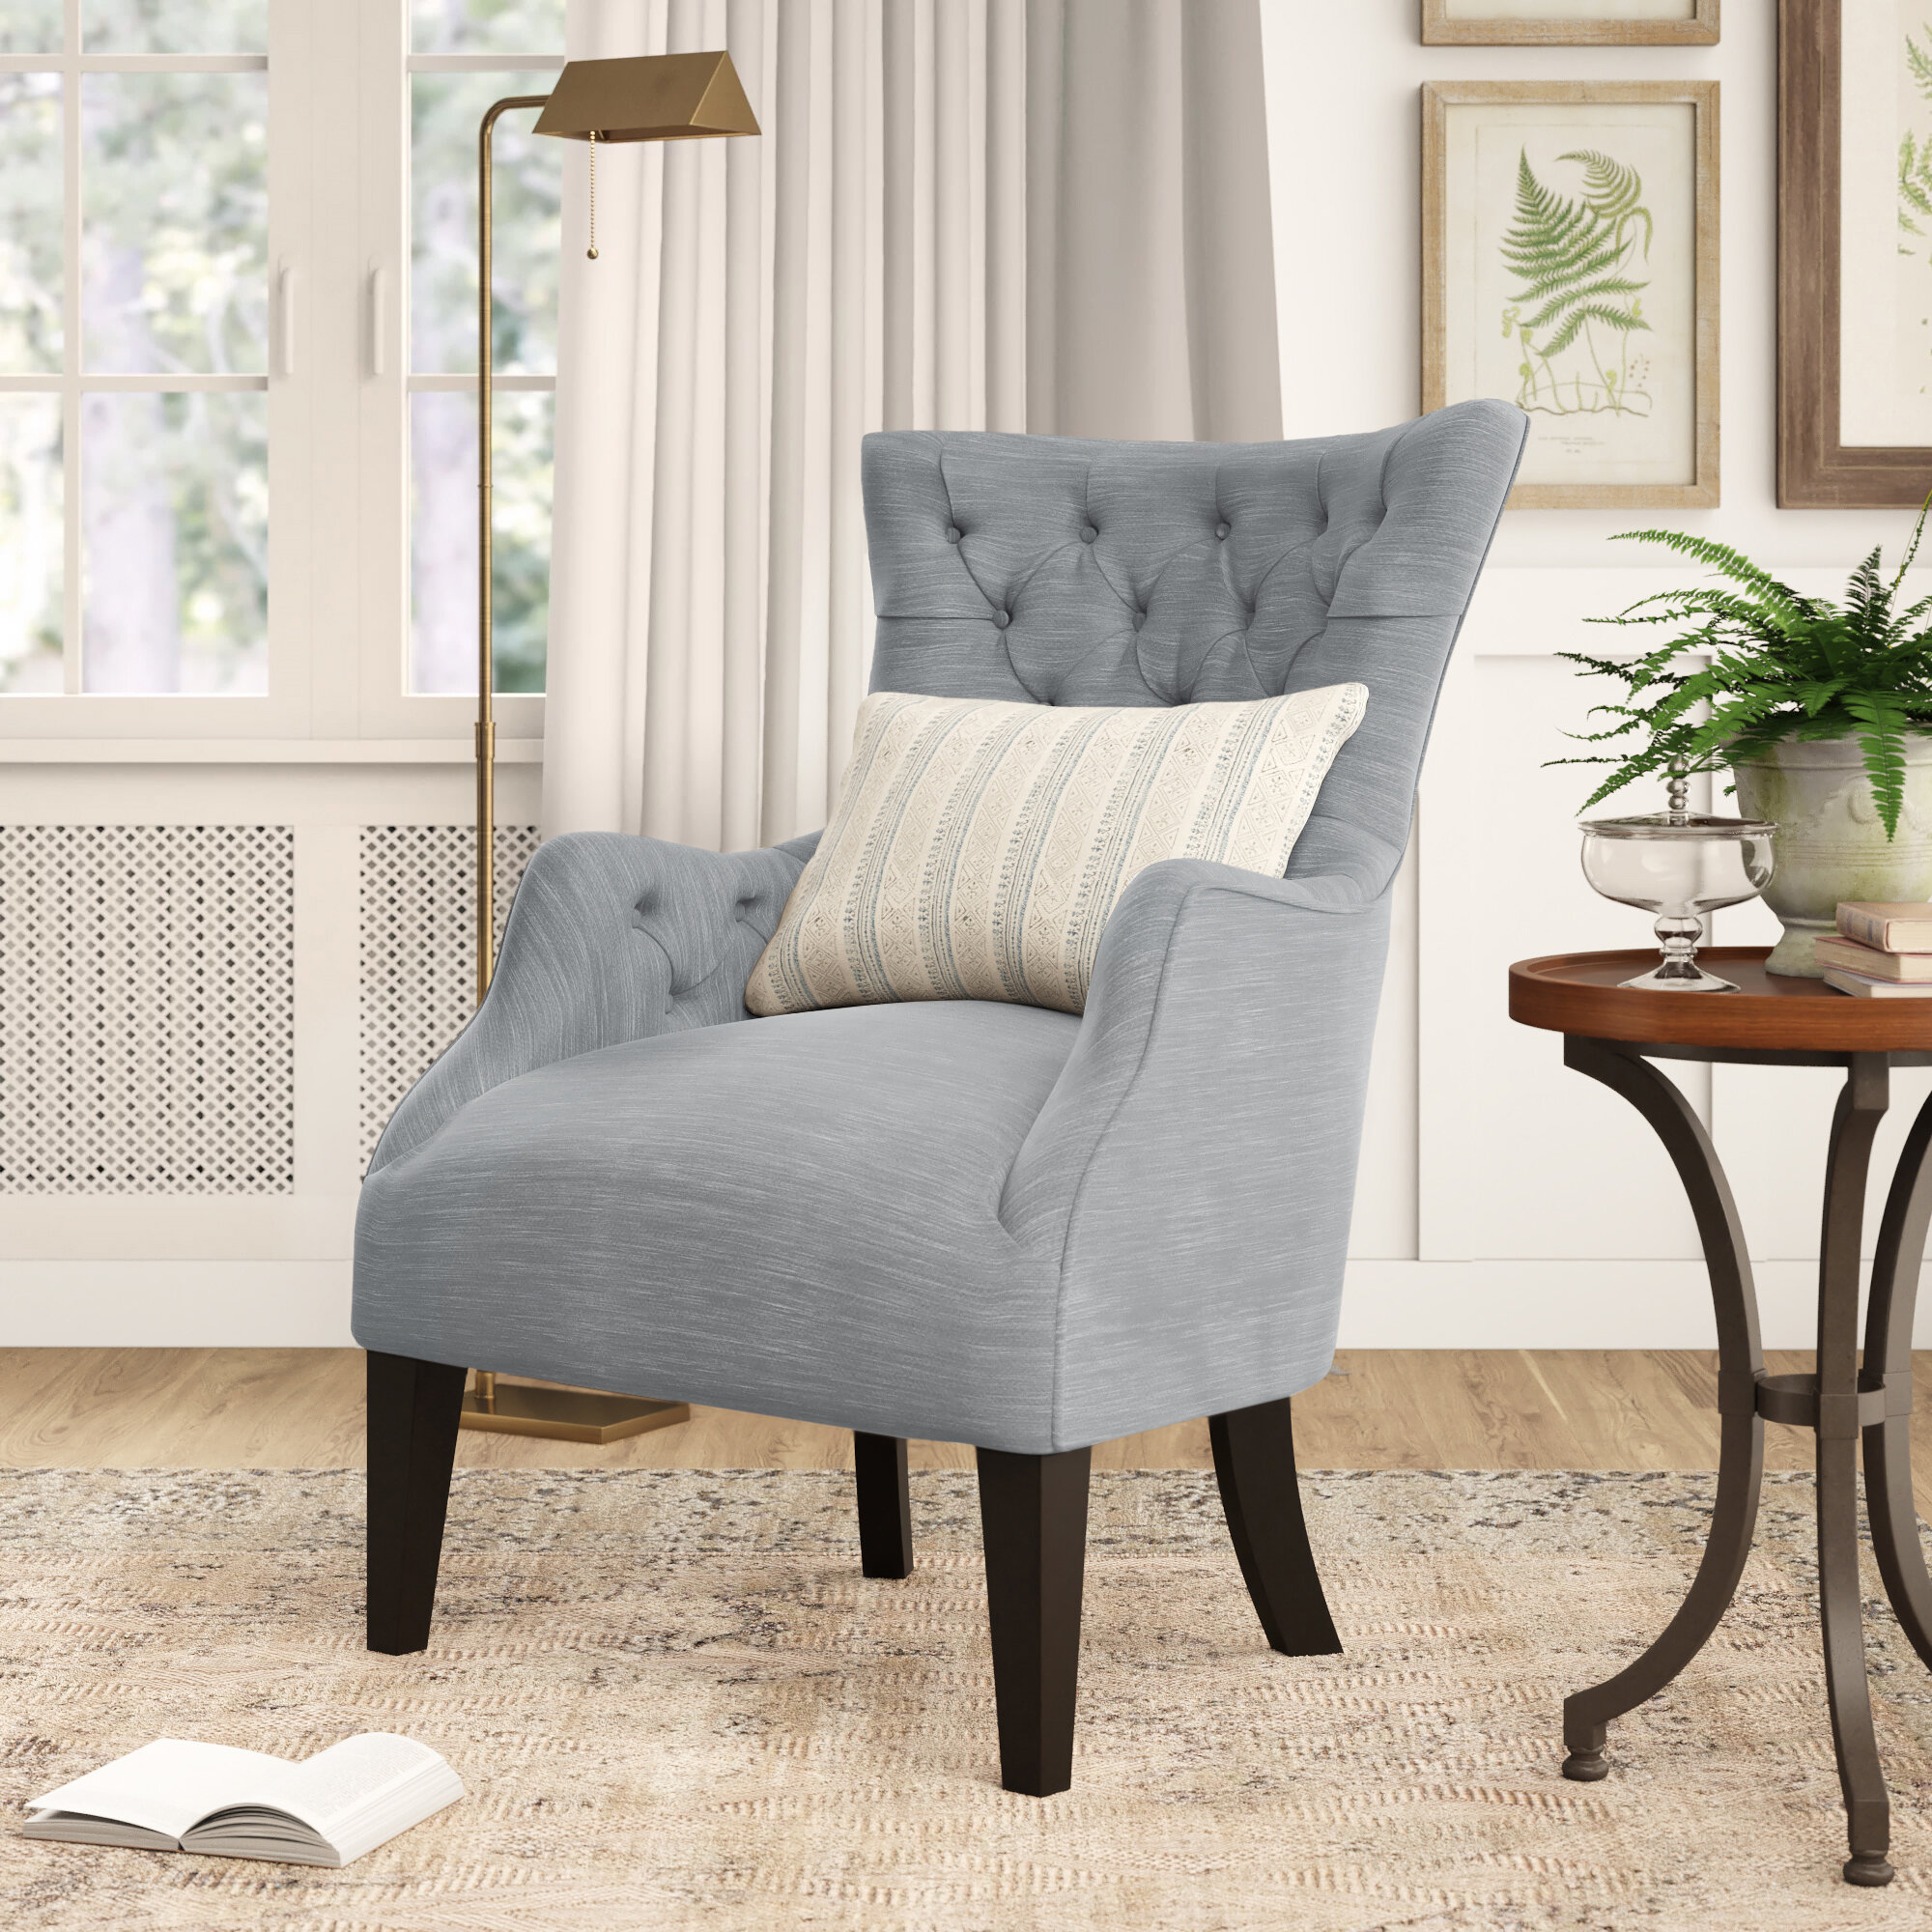 Farmhouse & Rustic Tufted Accent Chairs | Birch Lane With Galesville Tufted Polyester Wingback Chairs (View 4 of 15)